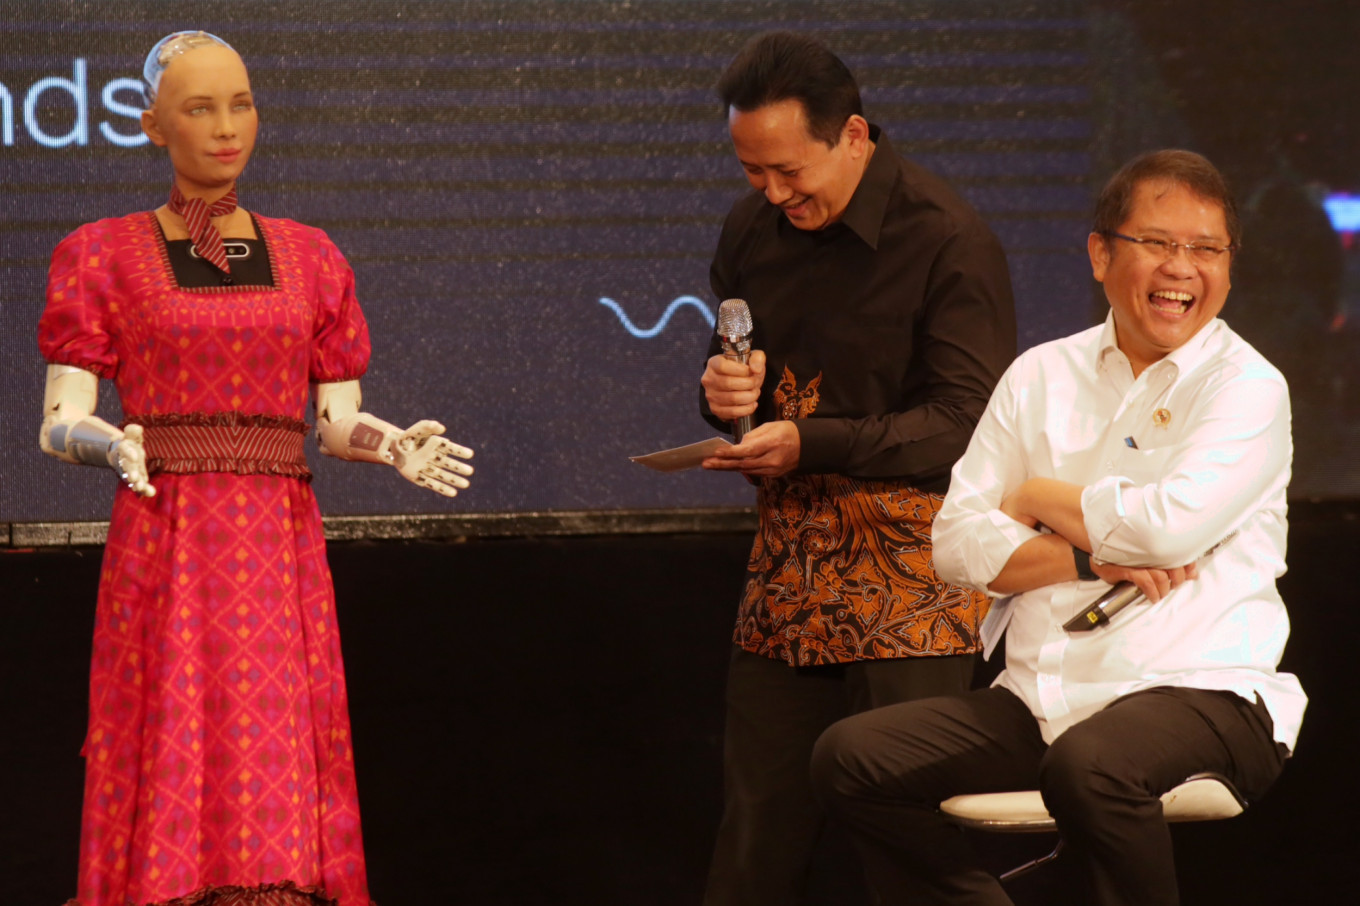 It's possible for robots to have feelings, Sophia tells Jakarta audiences